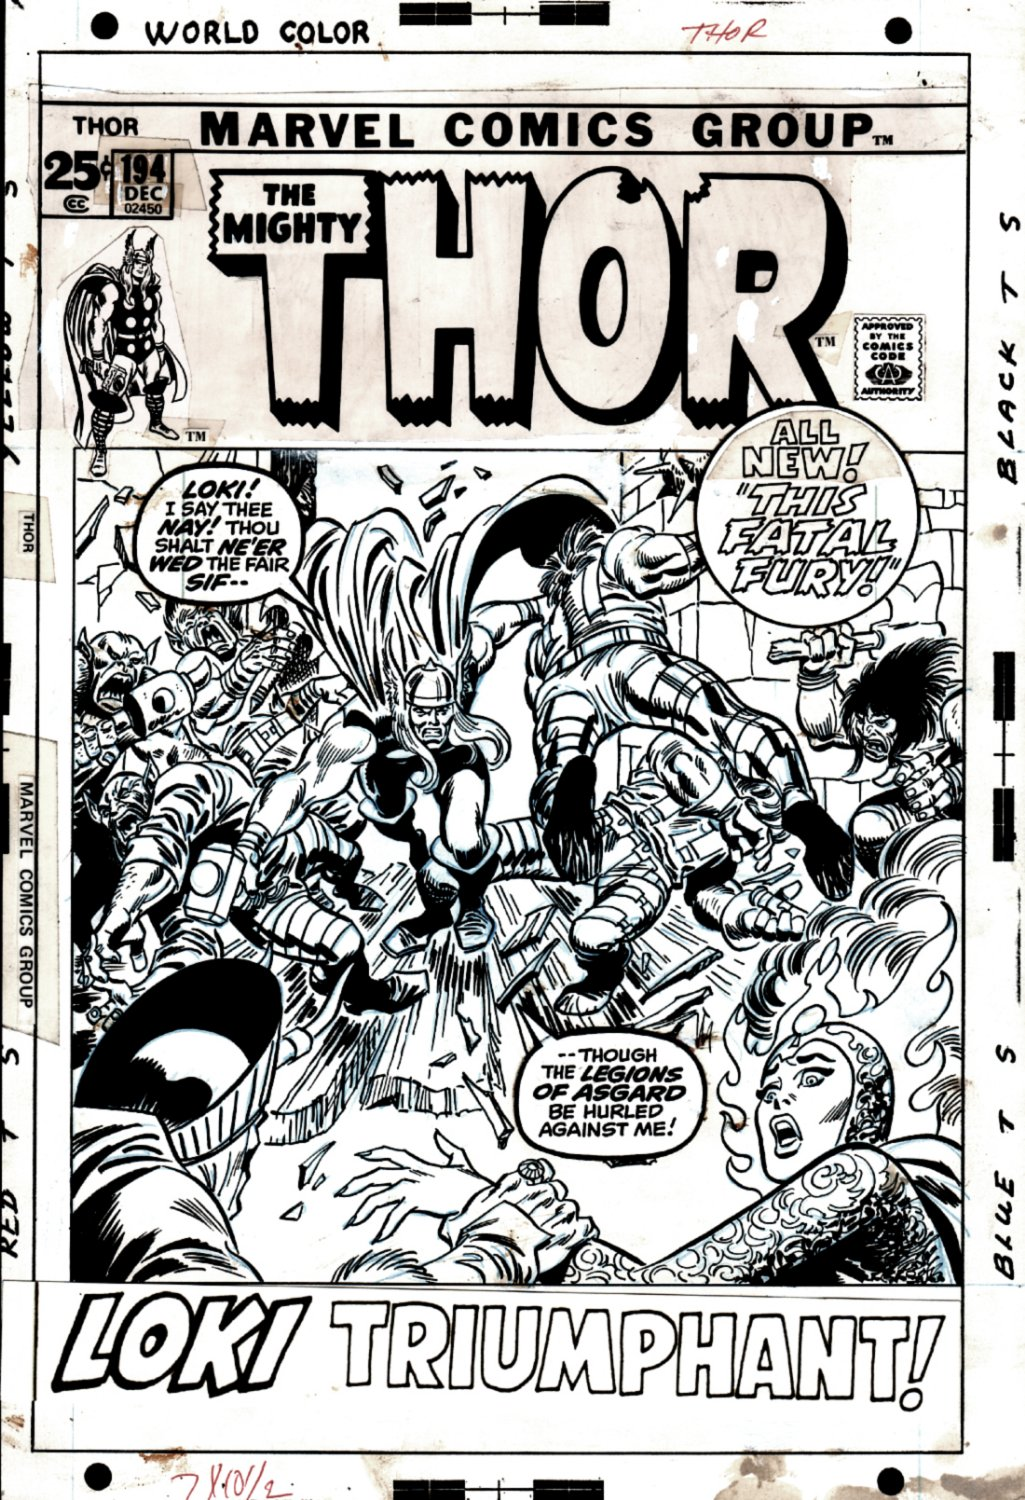 Thor #194 Cover (THOR BATTLES 6 CREATURES & LOKI TO SAVE SIF!) 1971